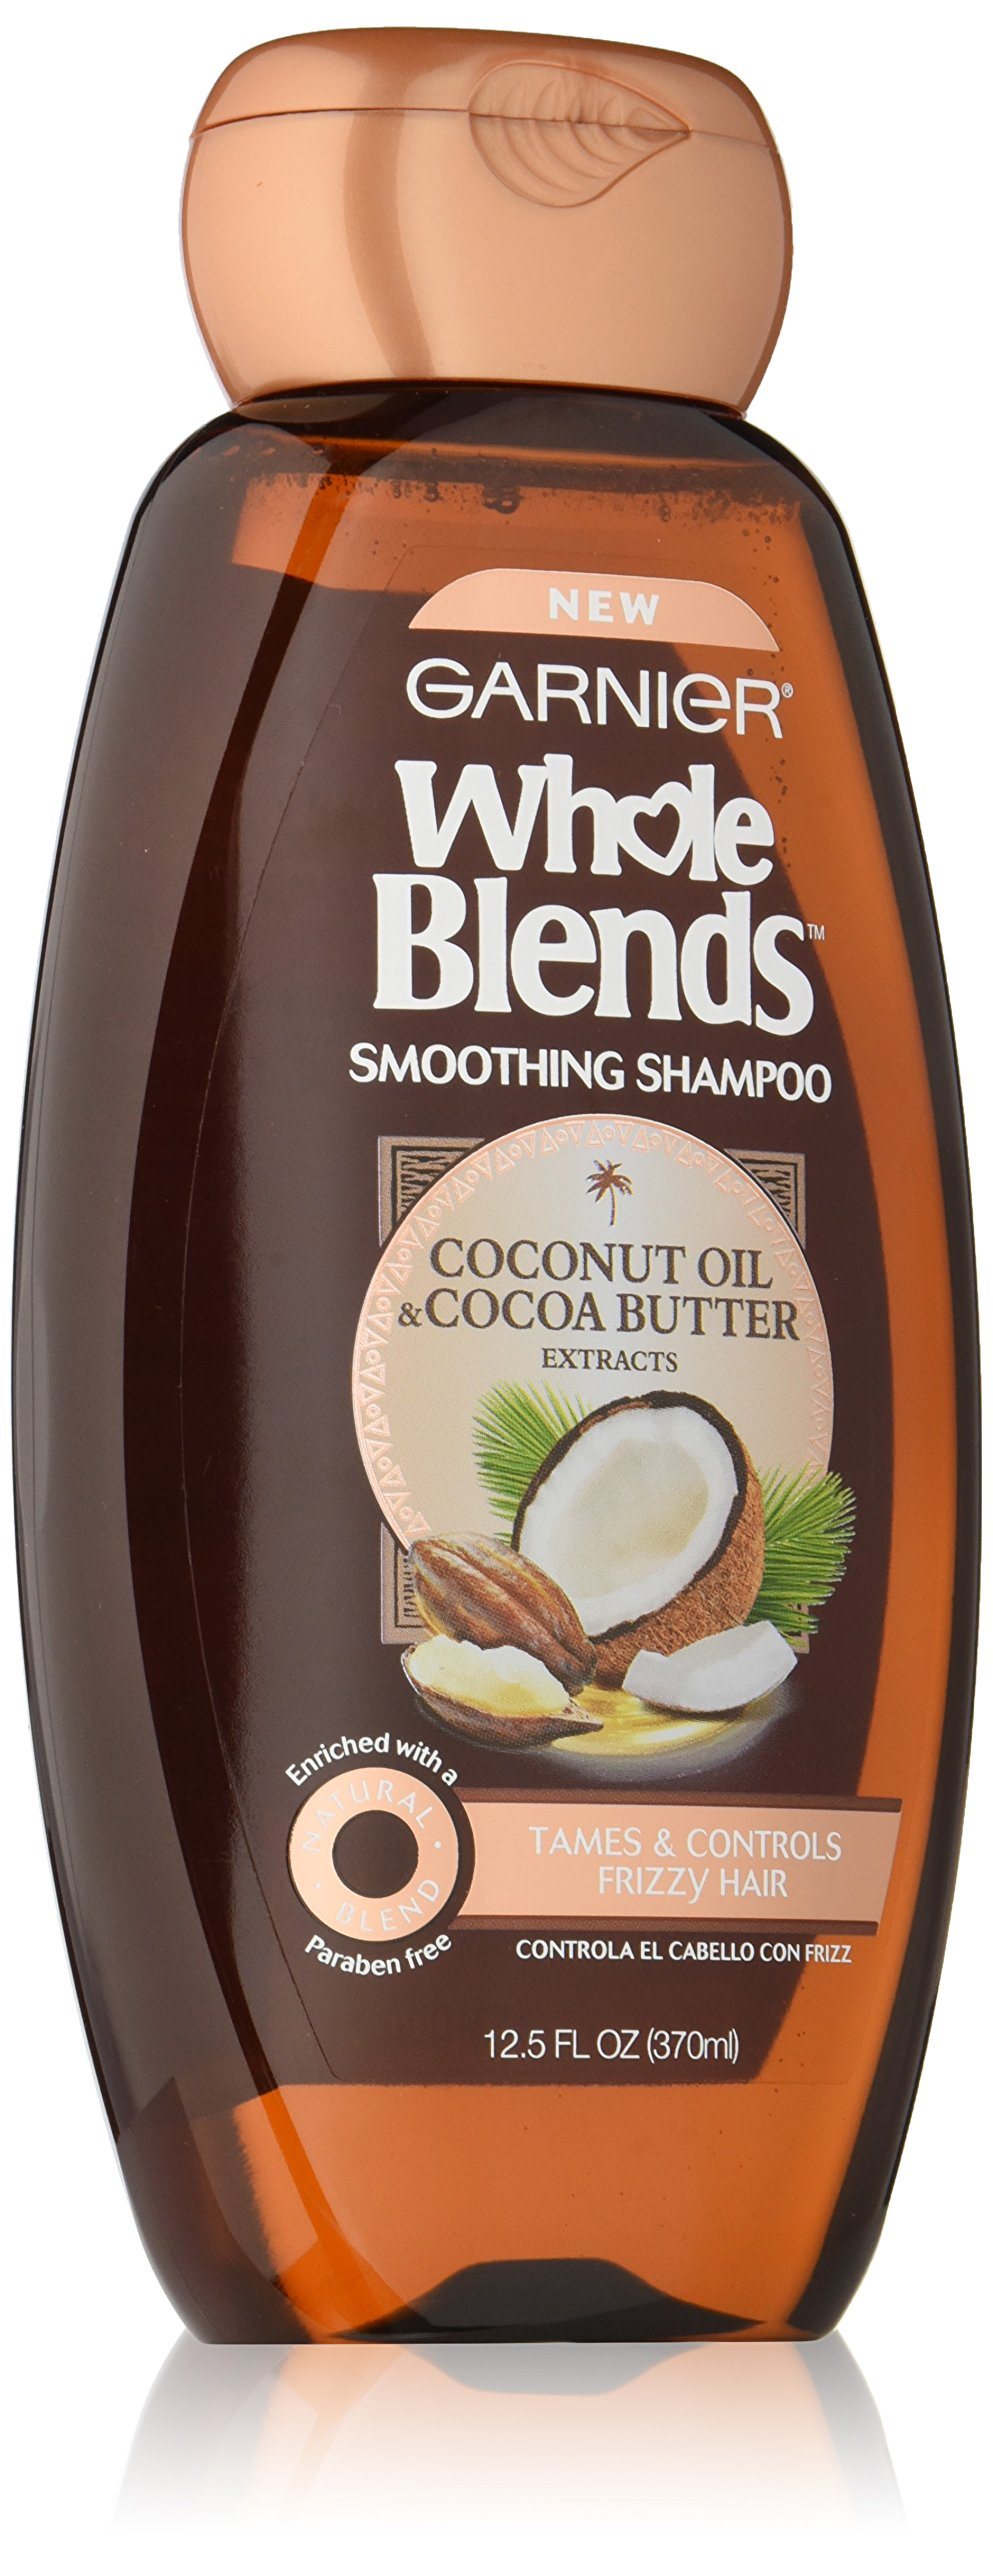 Garnier Whole Blends Shampoo with Coconut Oil & Cocoa Butter Extracts, 12.5 fl. oz.